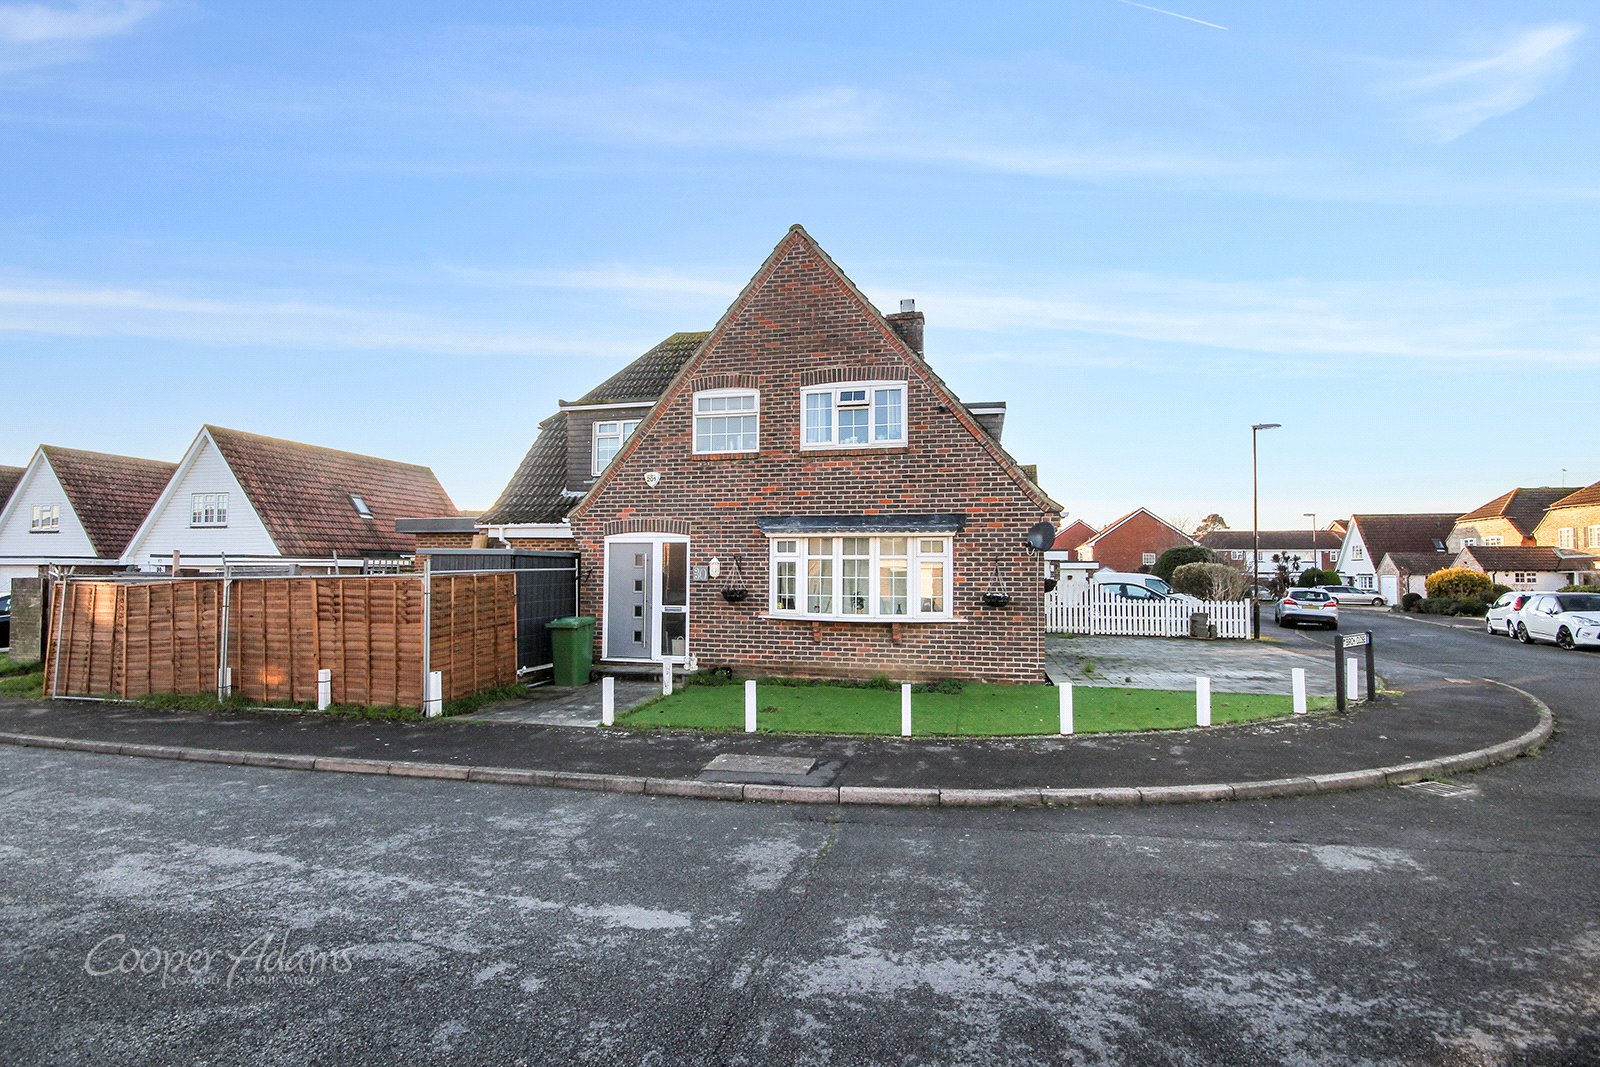 4 bed house for sale in Foxdale Drive, Angmering, BN16